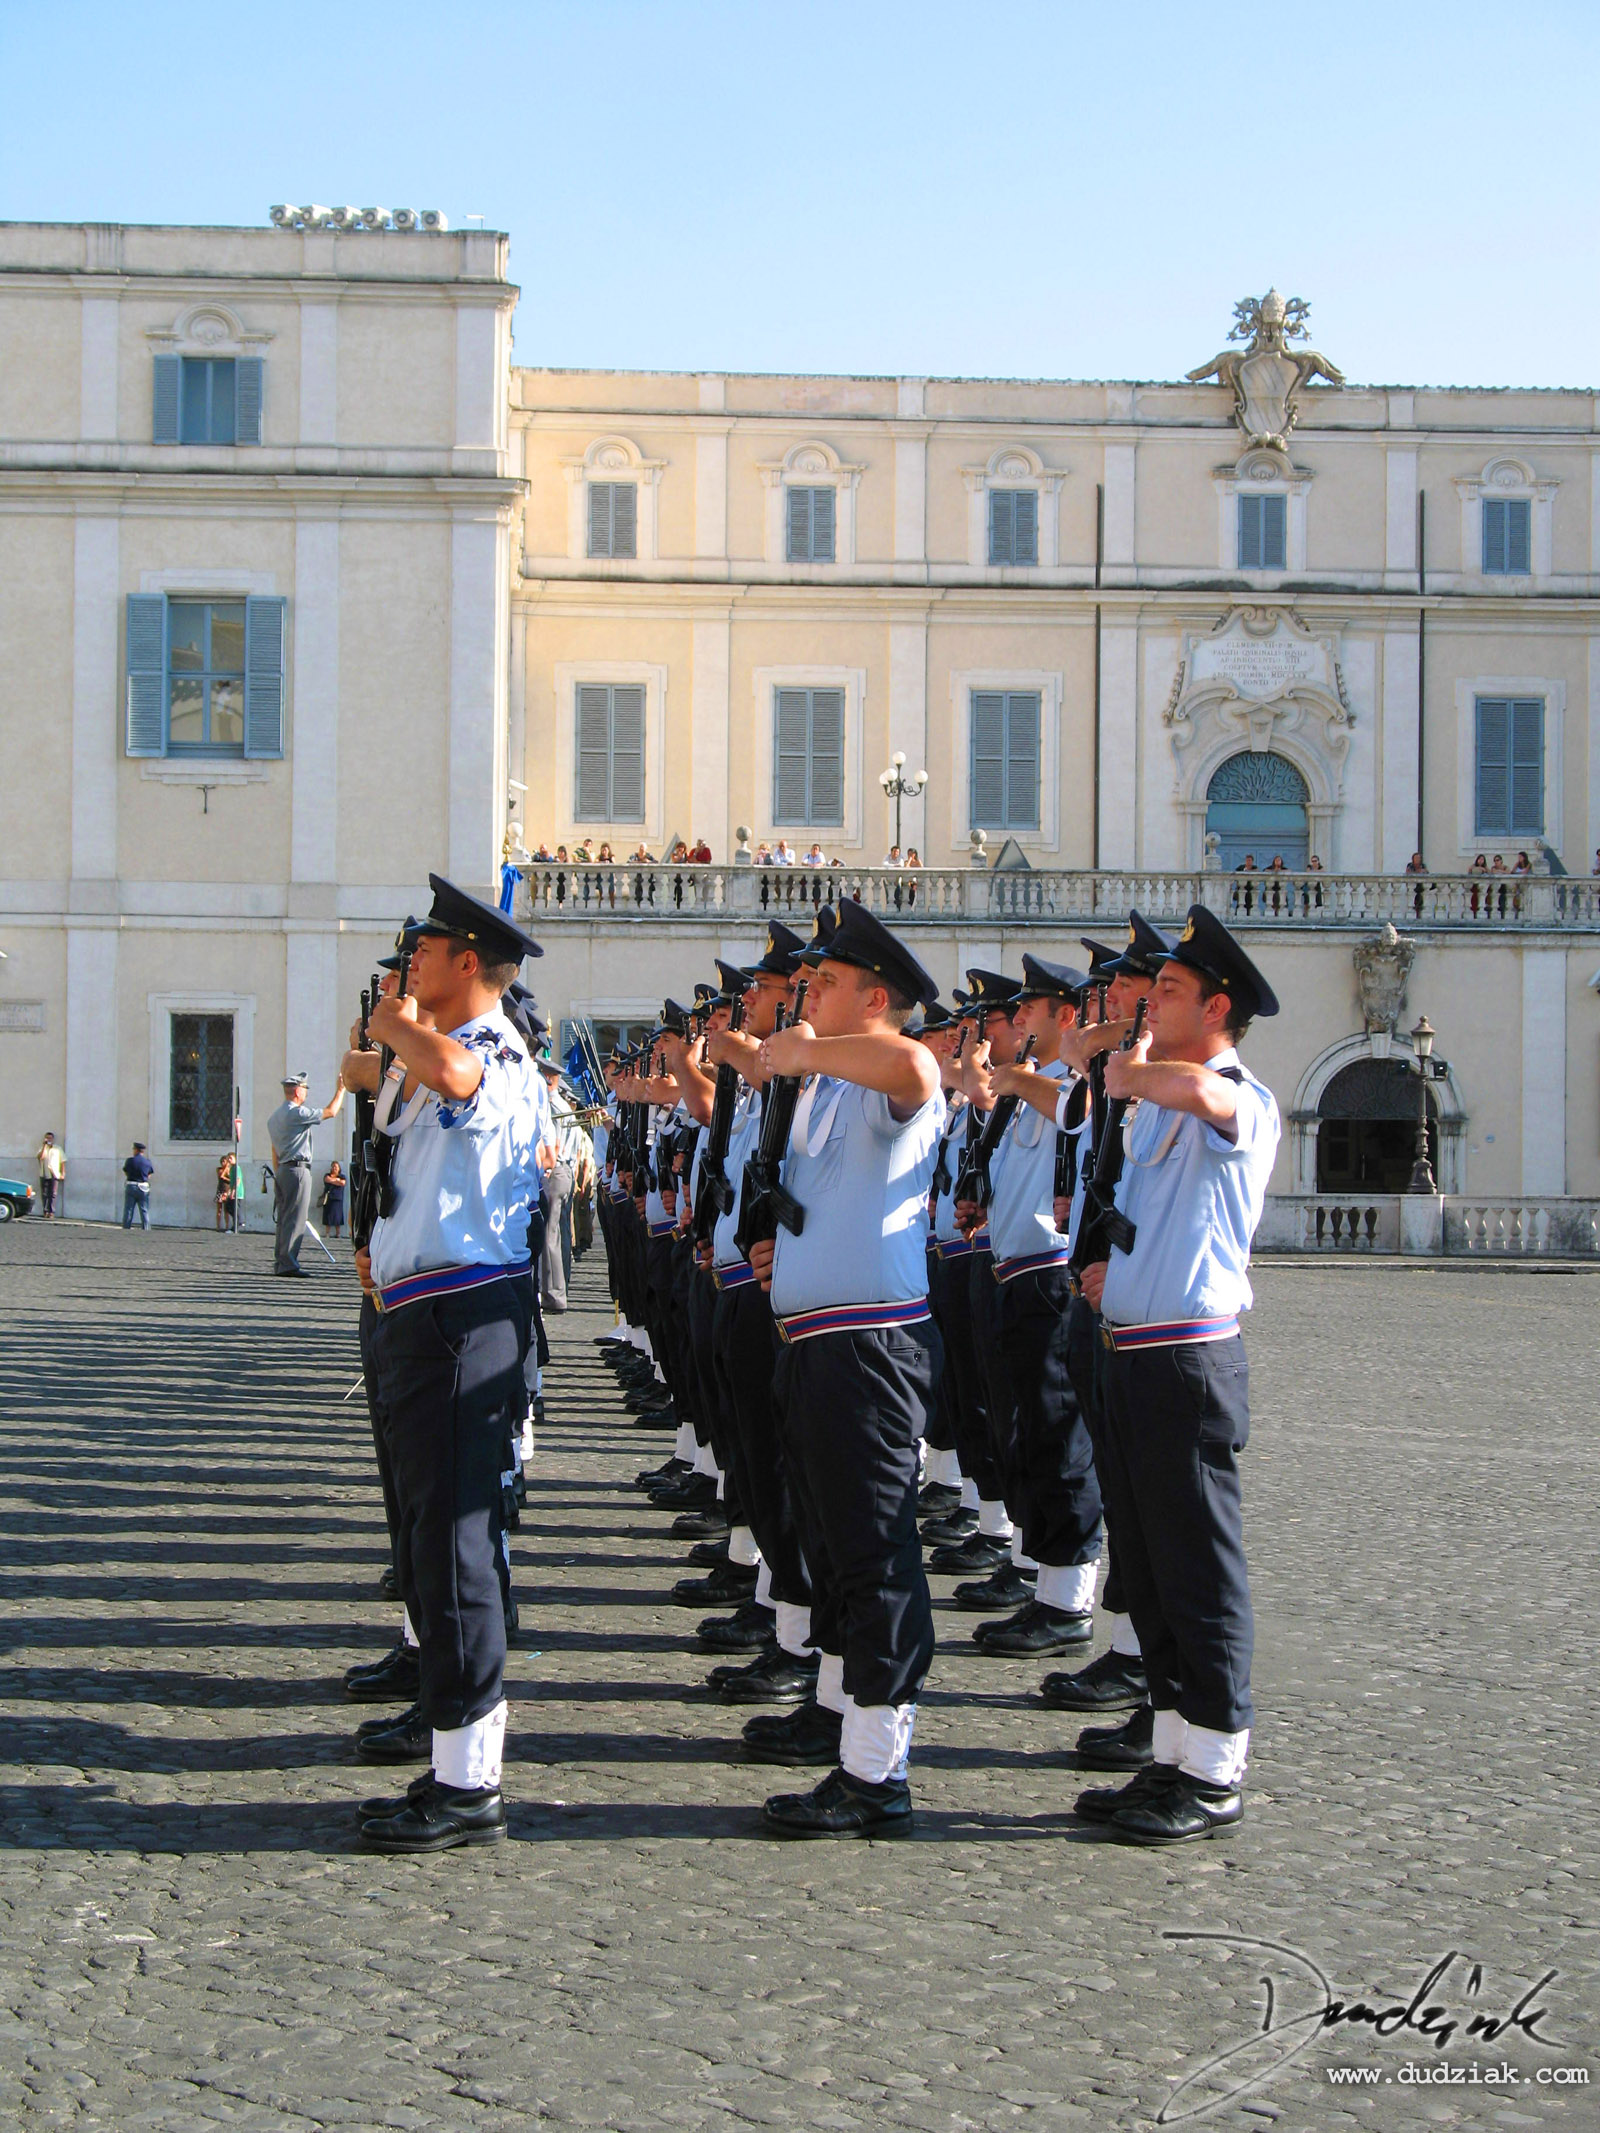 Italian Soldiers,  changing of the guard,  Italy,  Palazzo Quirinale,  Roma,  soldiers,  Rome